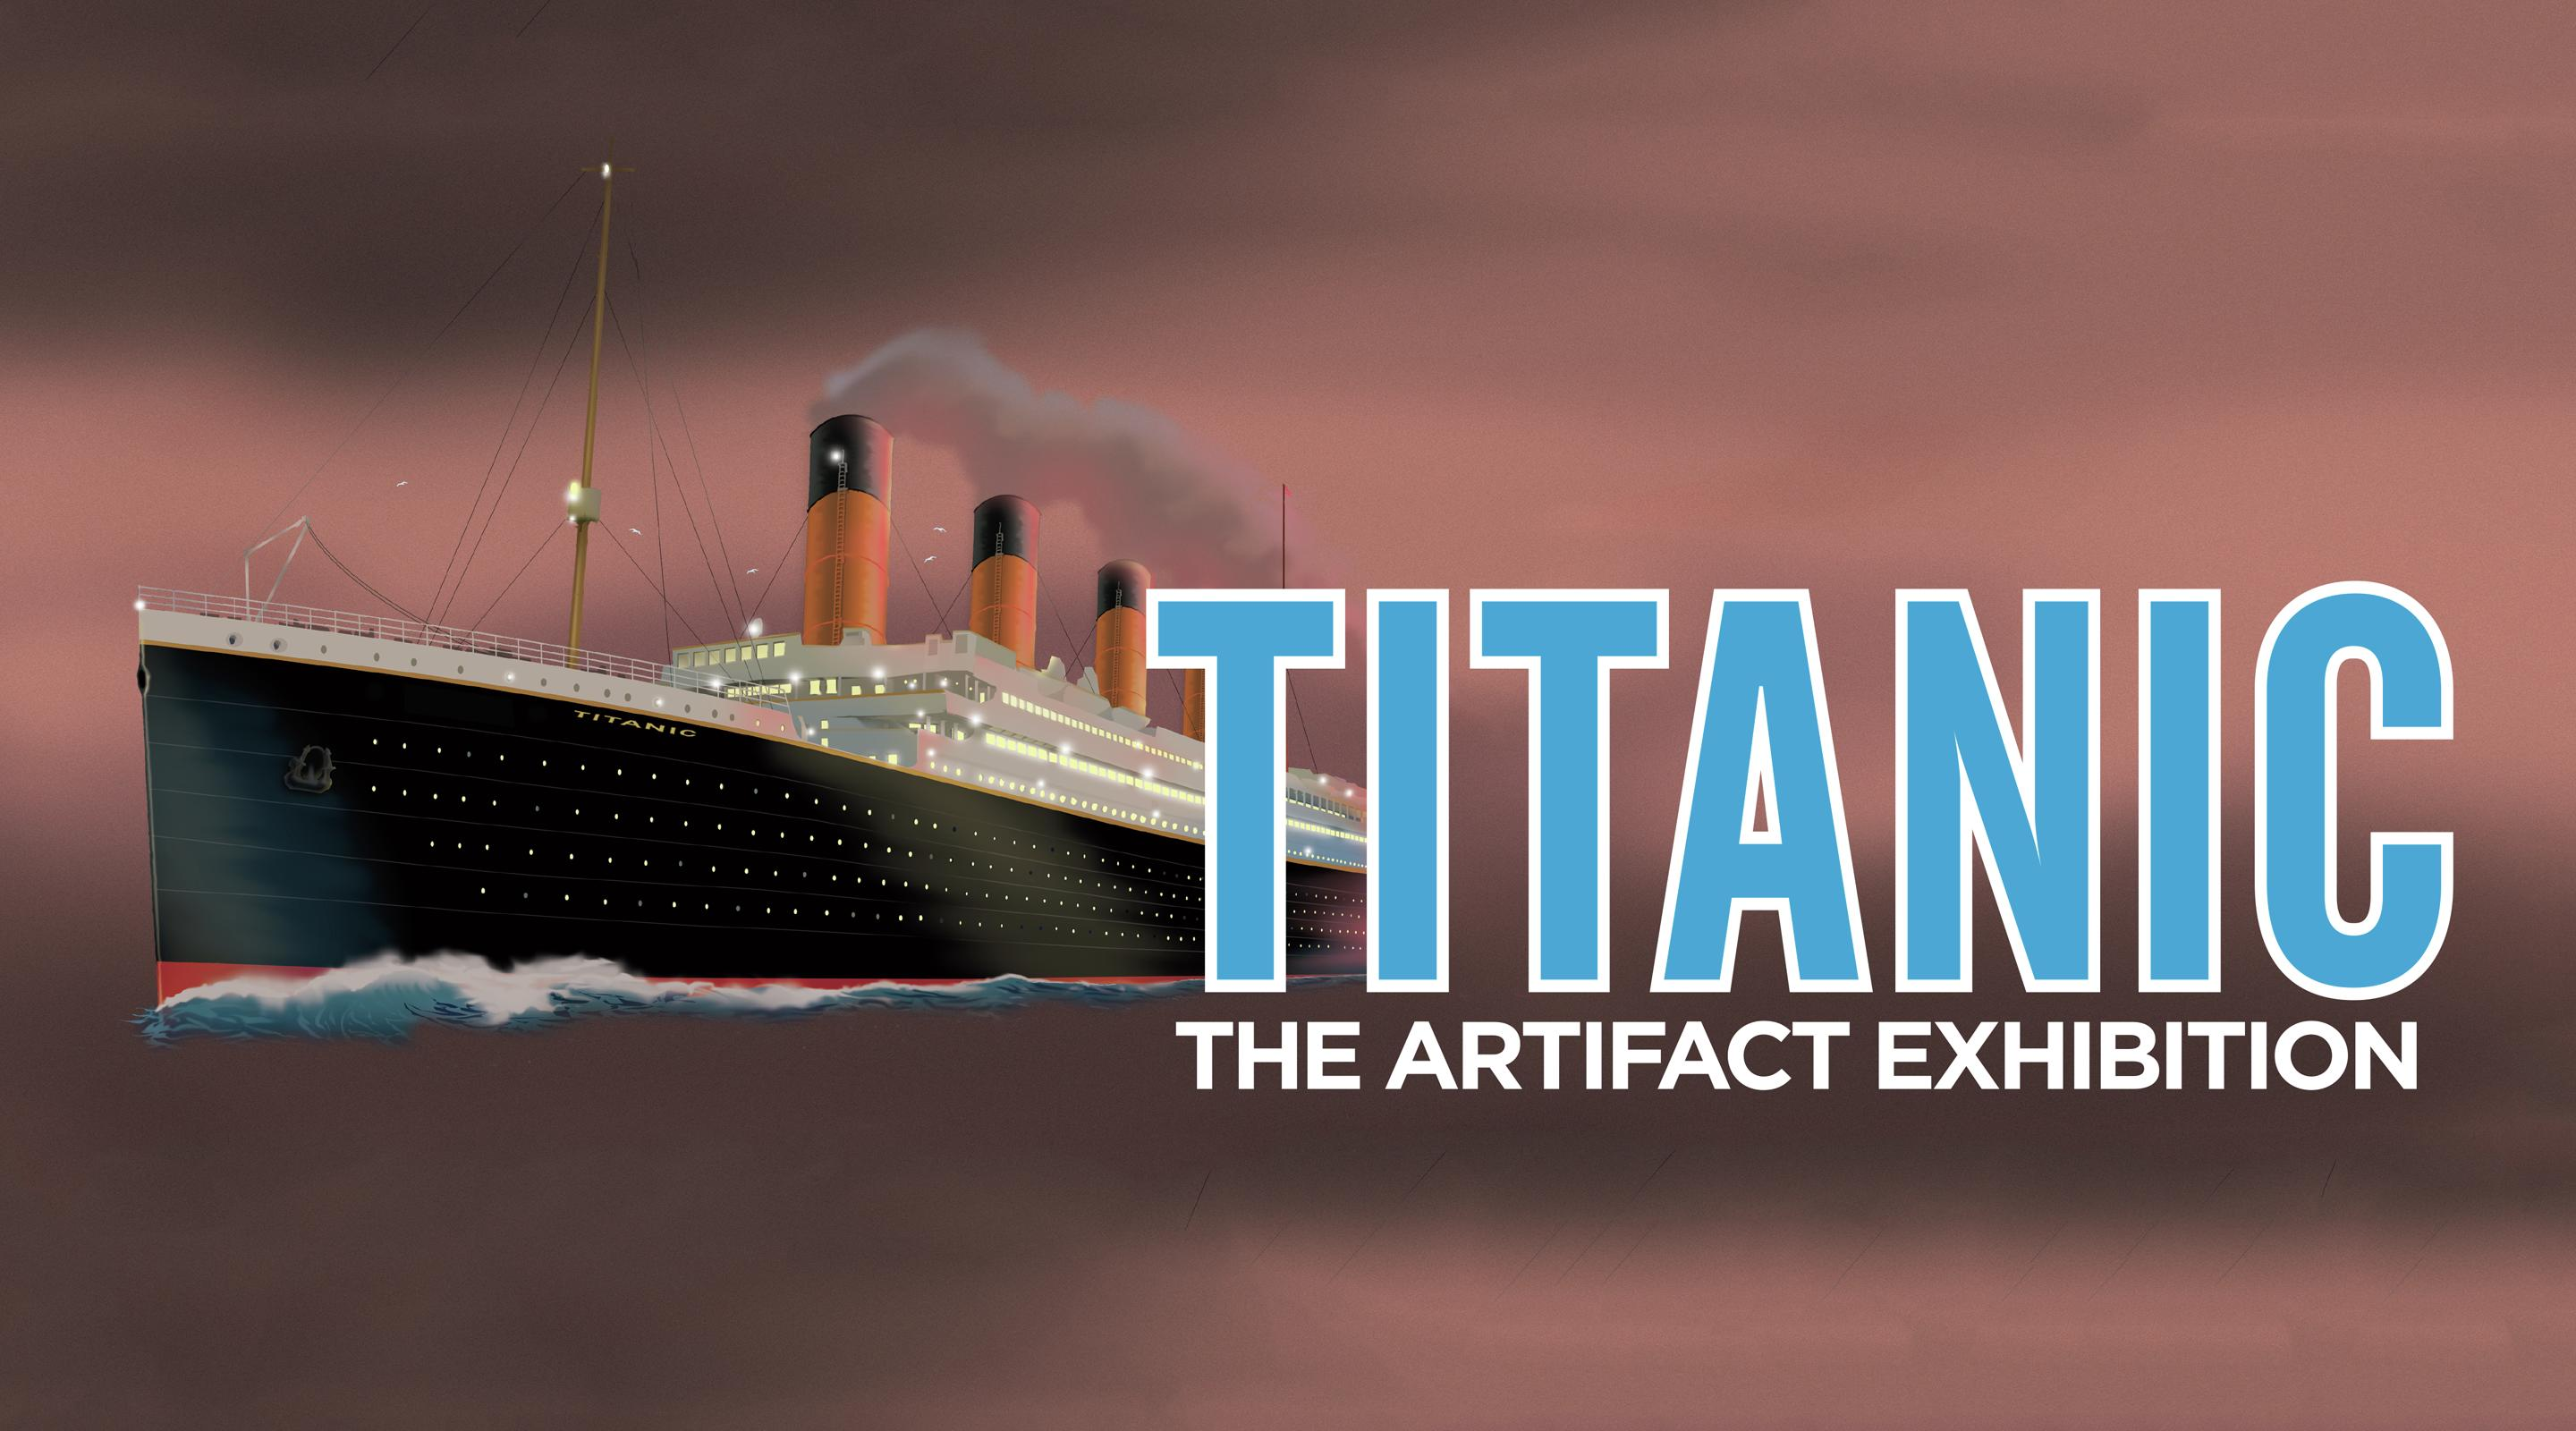 Museum - Titanic Exhibit at Luxor - MGM Resorts